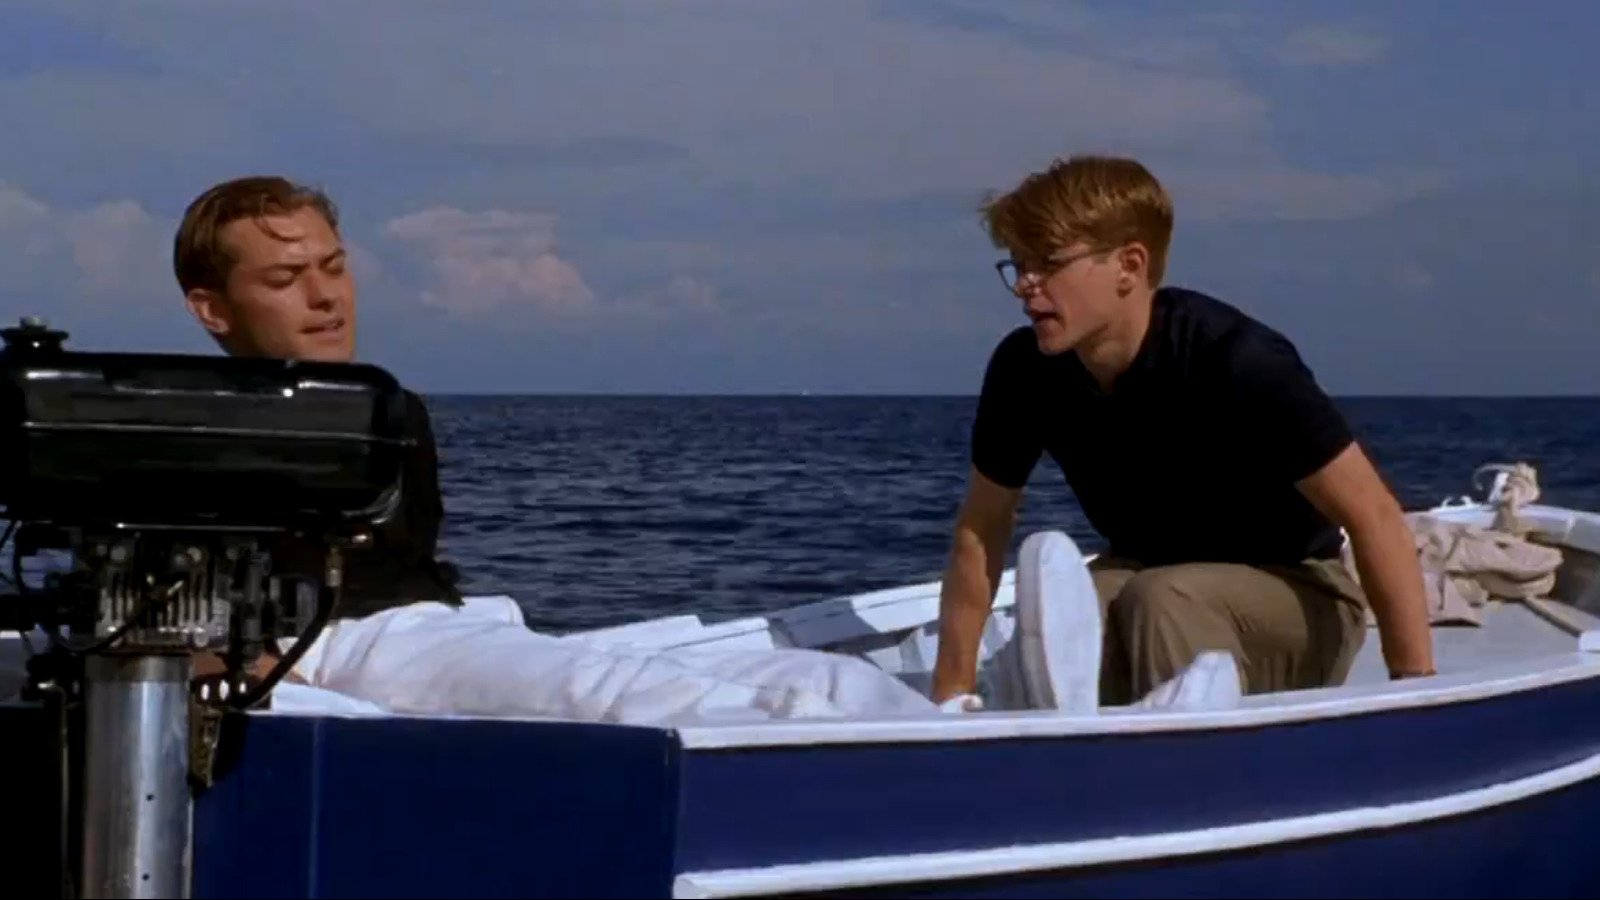 The Talented Mr. Ripley Movie Review